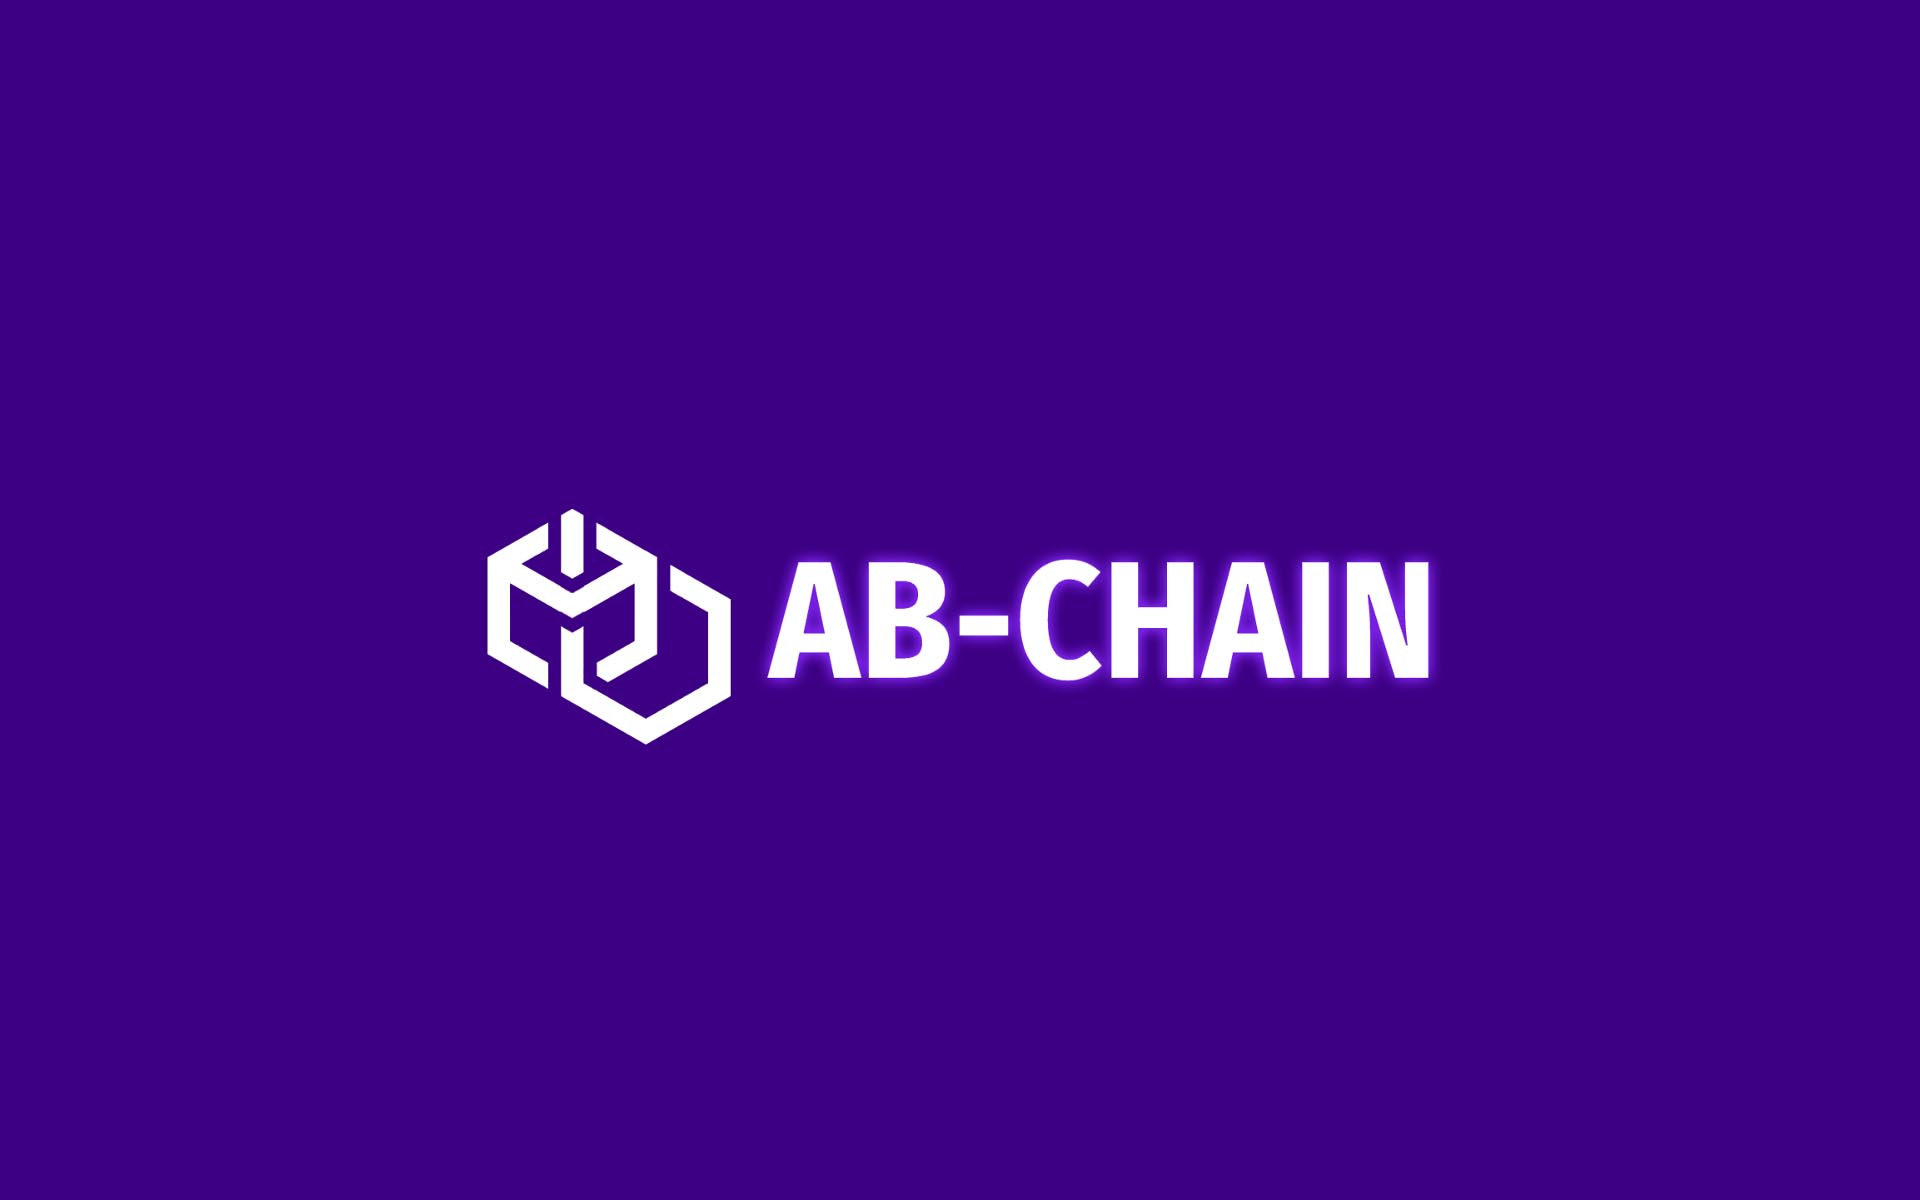 AB-CHAIN's New Cryptocurrency Makes Advertising Easy for Both Cryptocurrency Companies and Publishers